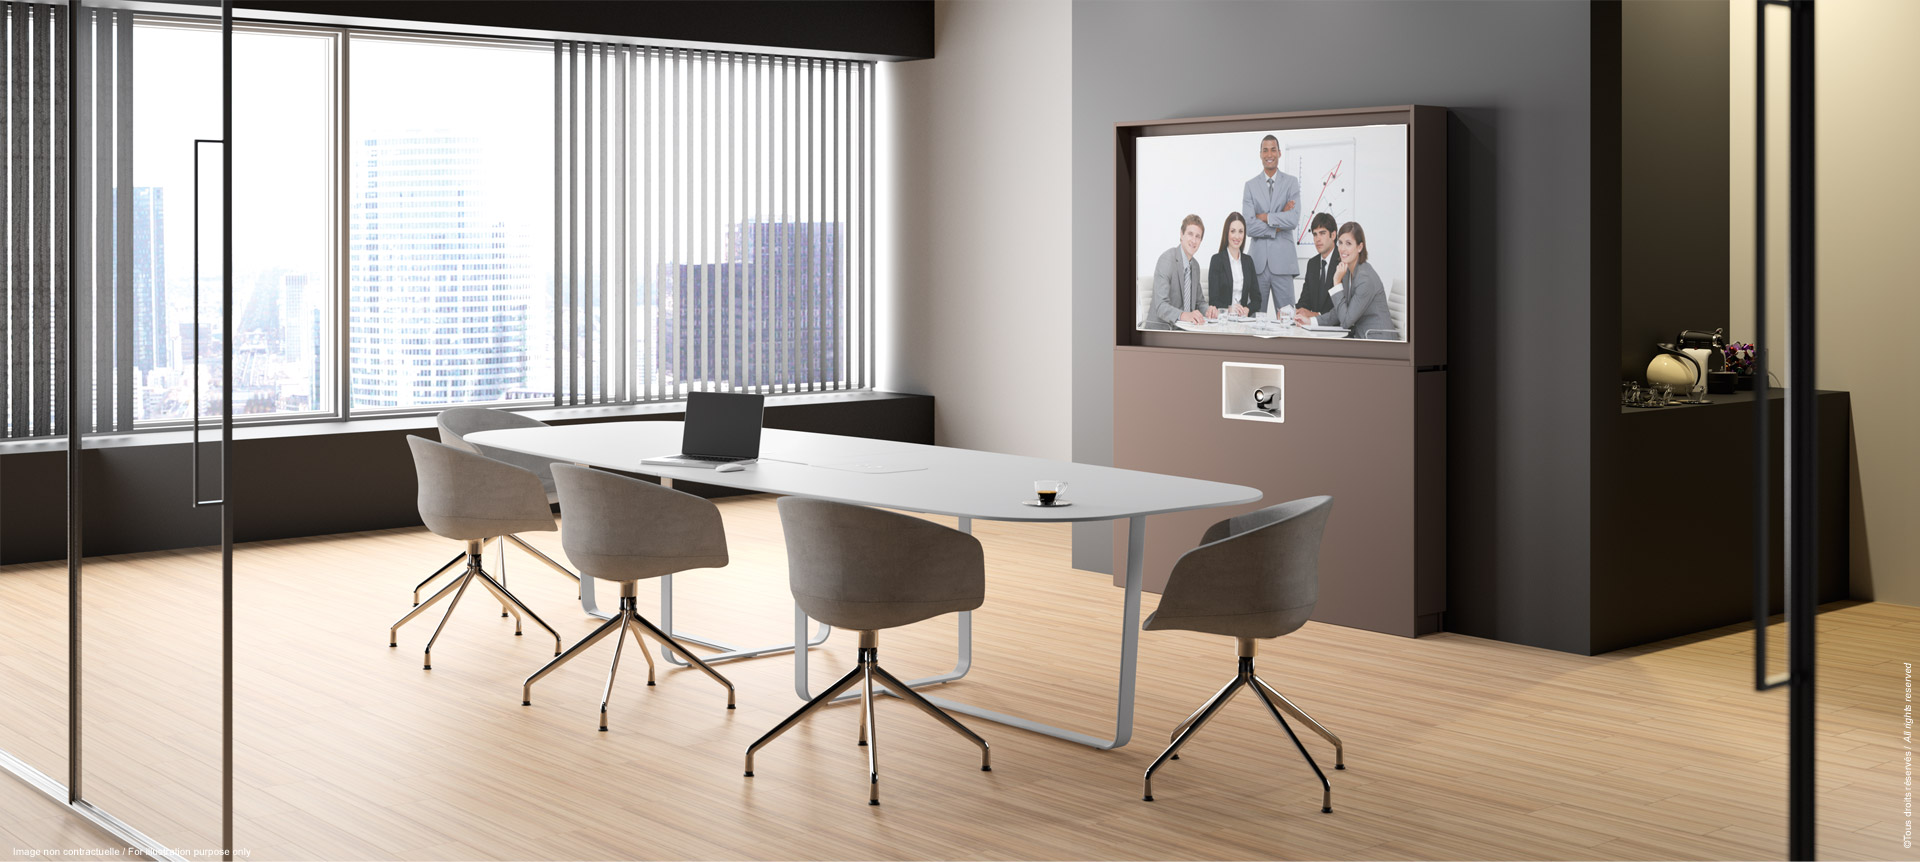 WEMEET REMOTE - Piece of furniture for meeting or video-conference